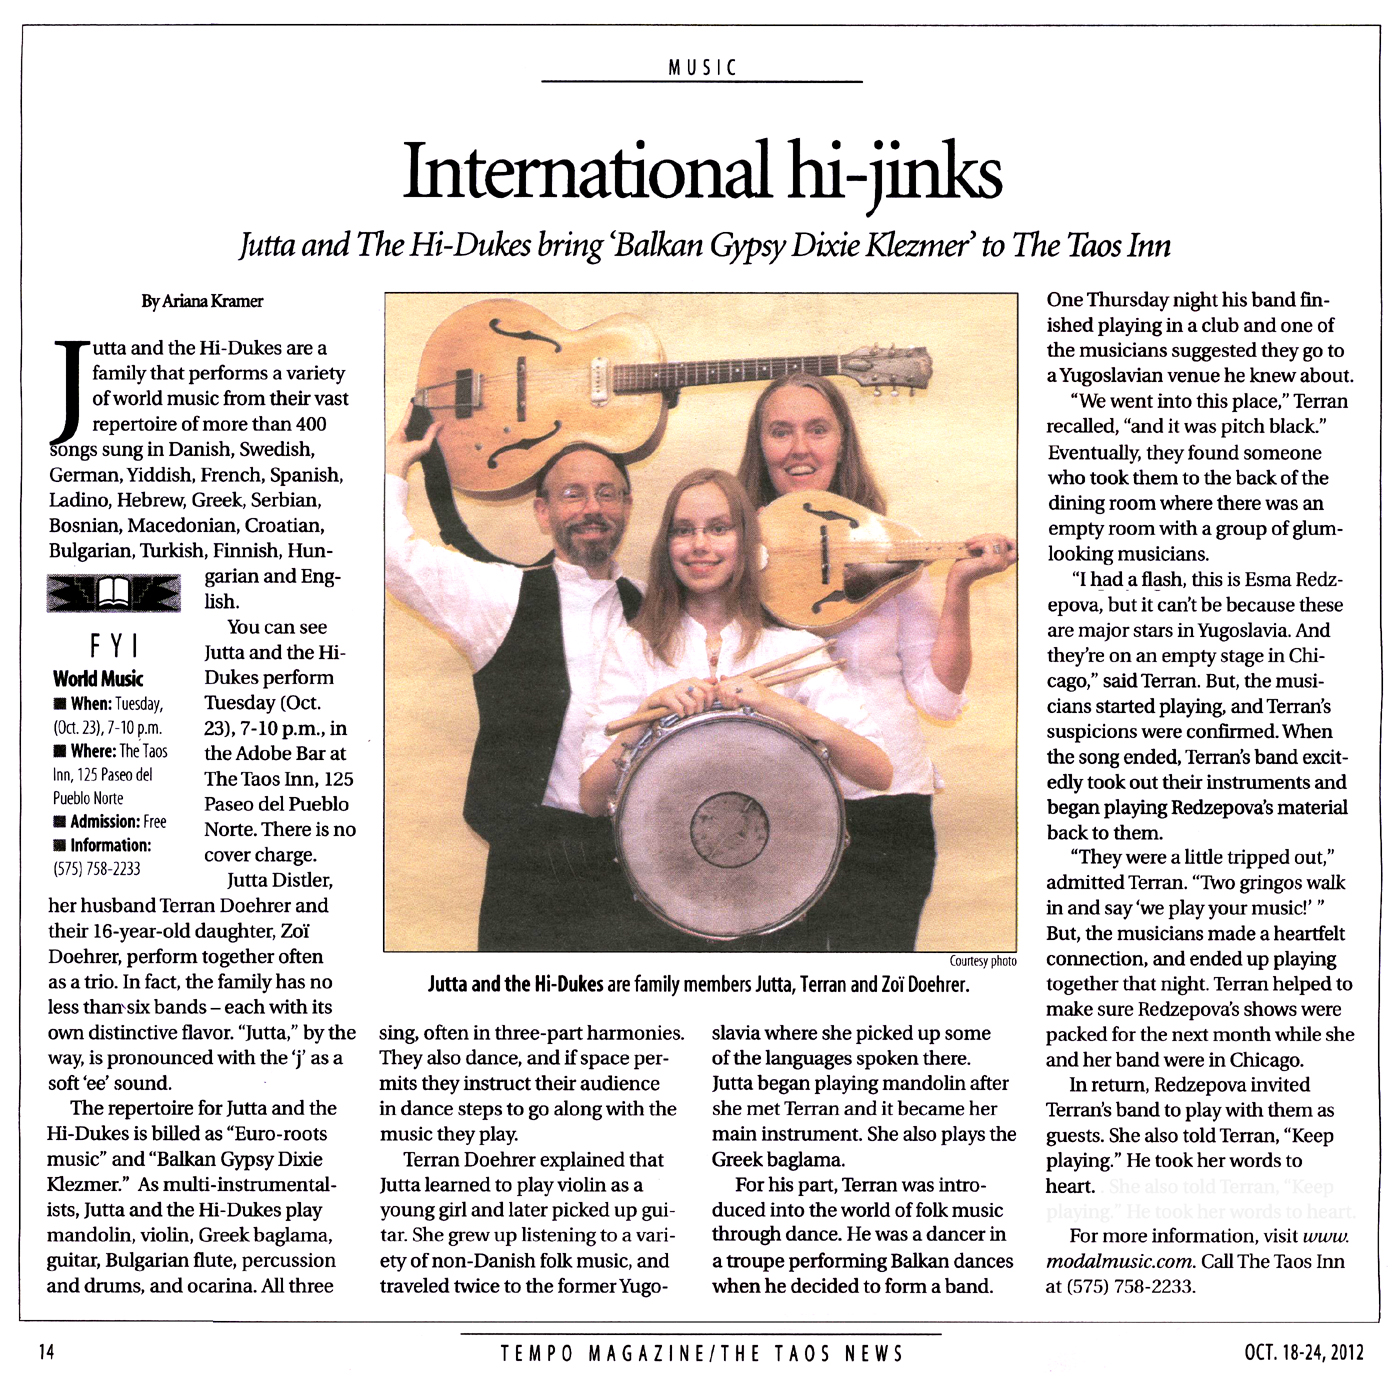 Image of the Taos News Tempo Magazine October 18, 2012 clipping about Jutta & the Hi-Dukes (tm) Design © 2013 Modal Music, Inc. (tm) All rights reserved.